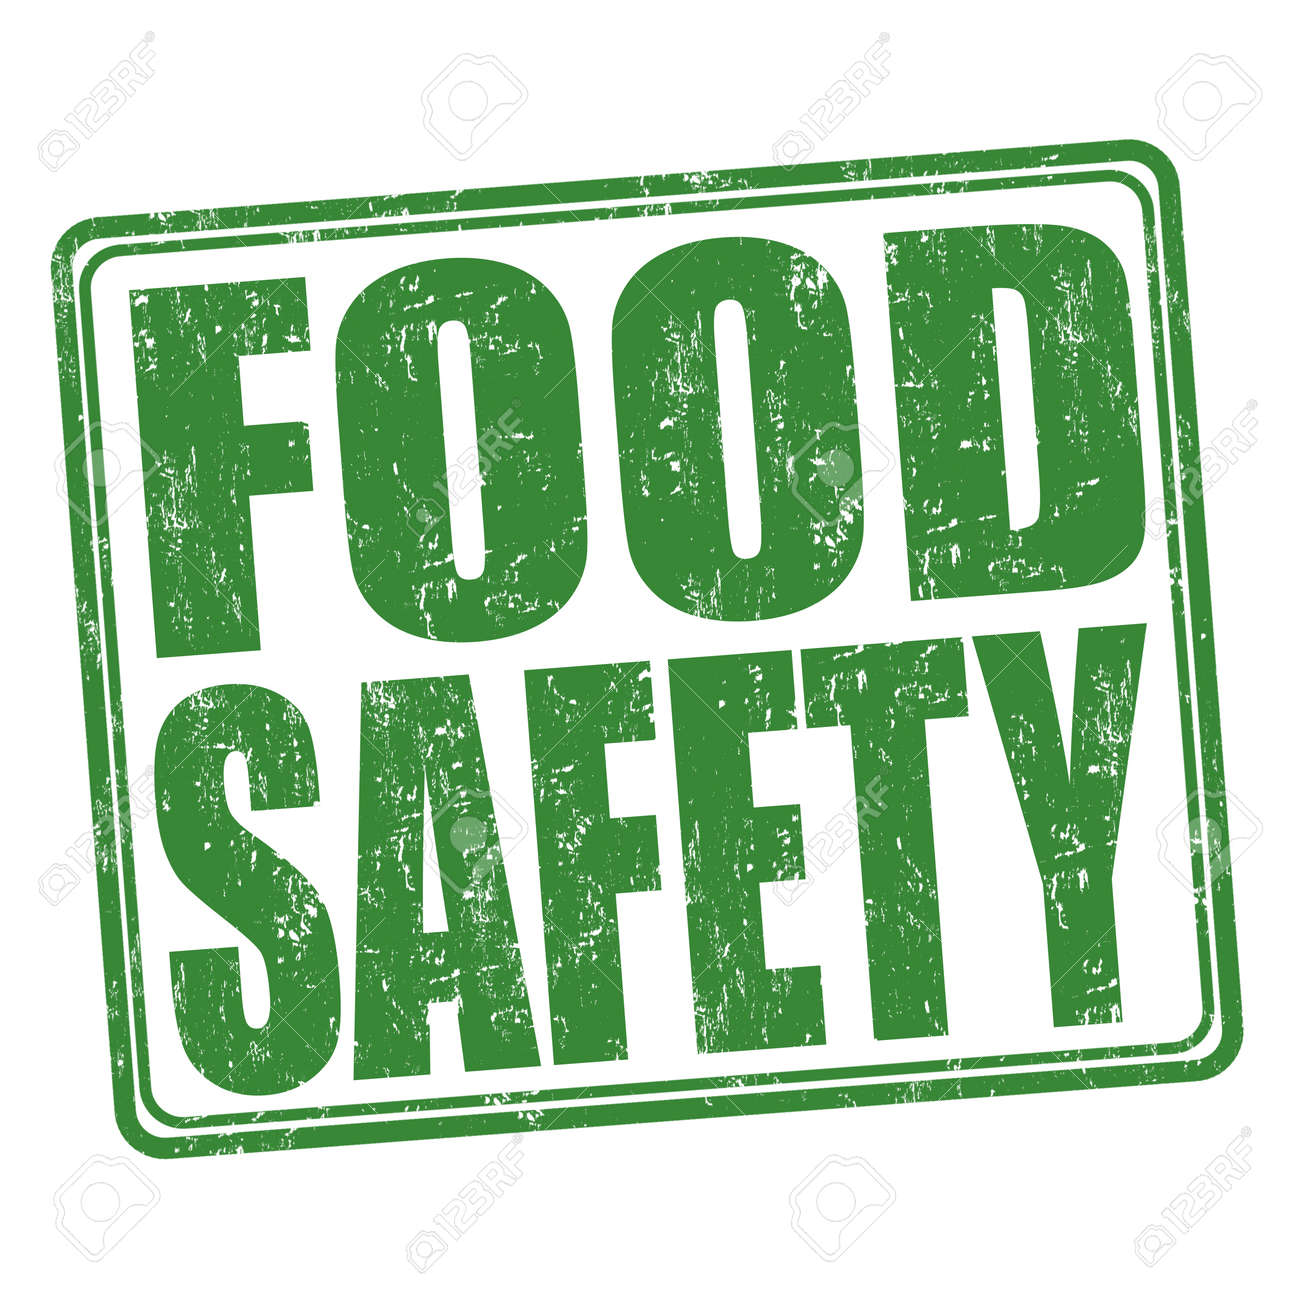 food safety clipart free intended for your inspiration